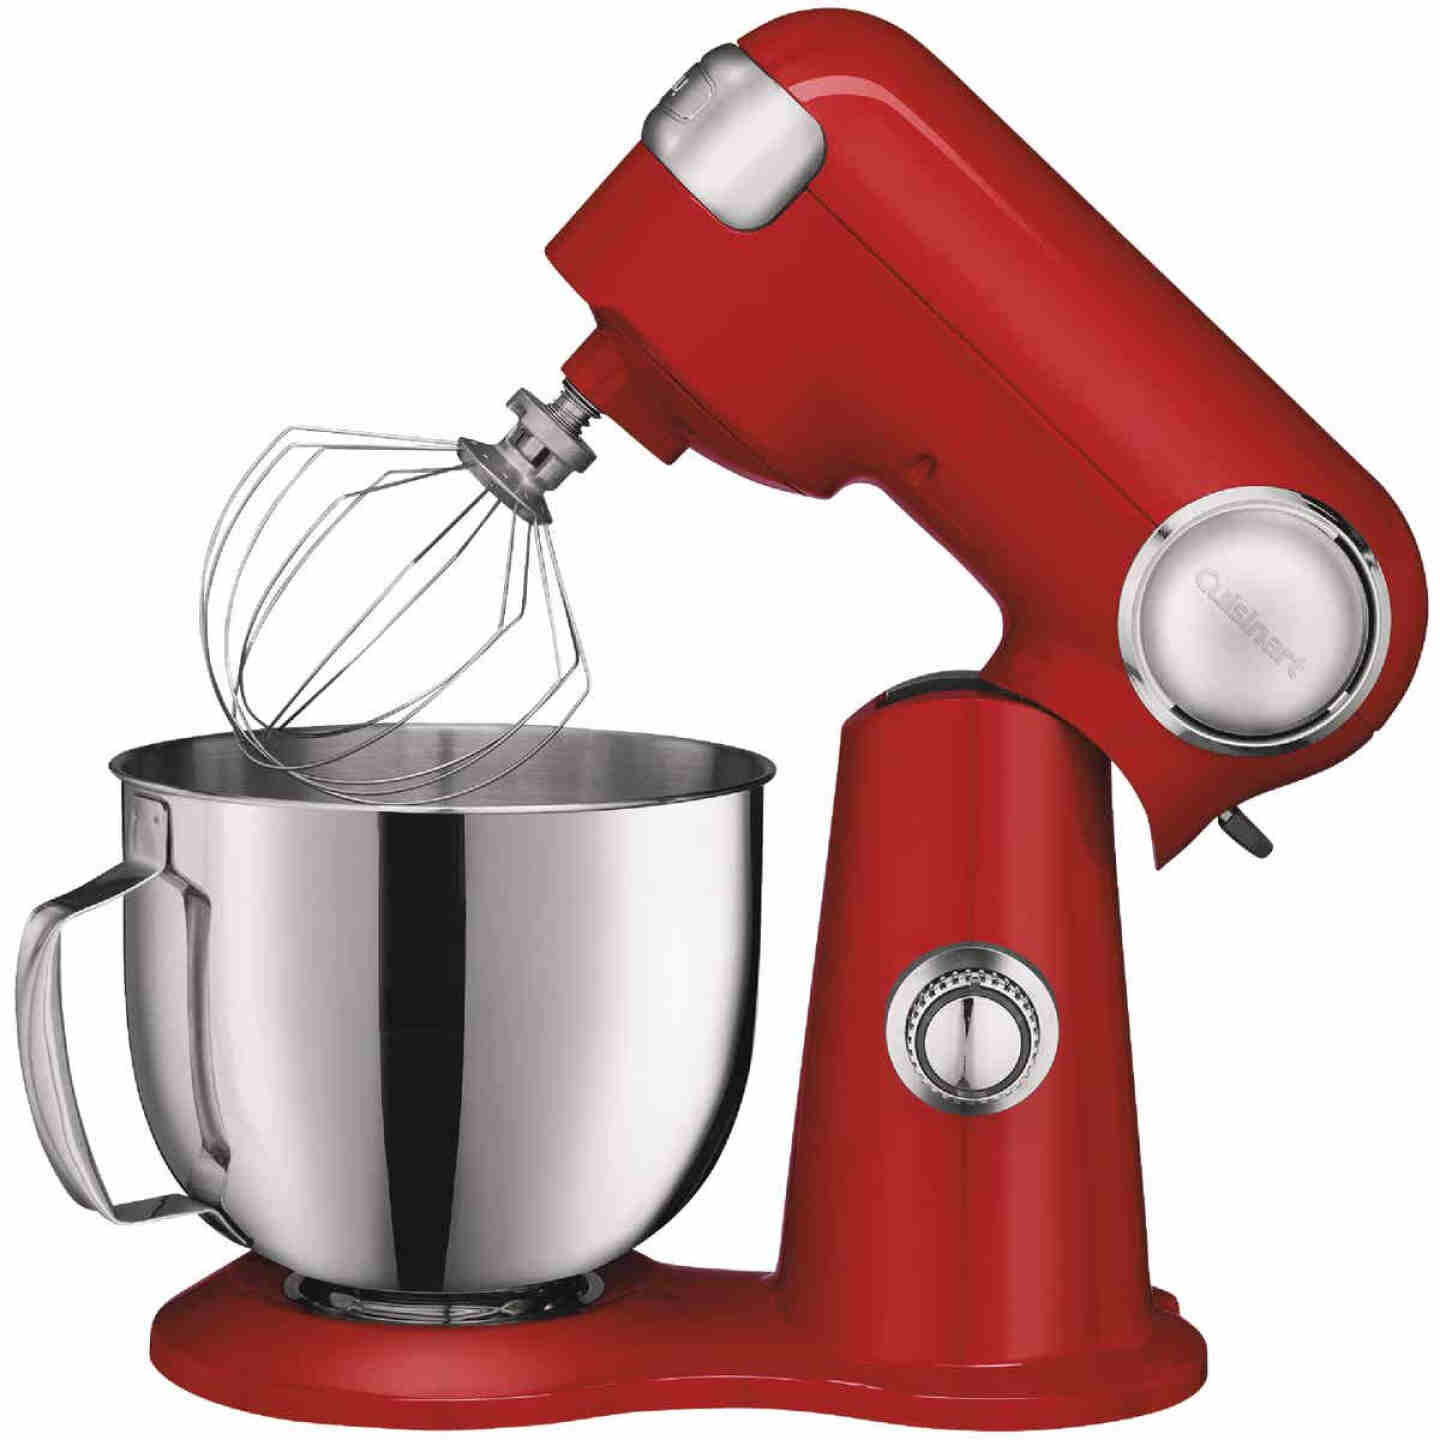 Cuisinart Precision Master 5.5 Qt. Red Stand Mixer Image 1